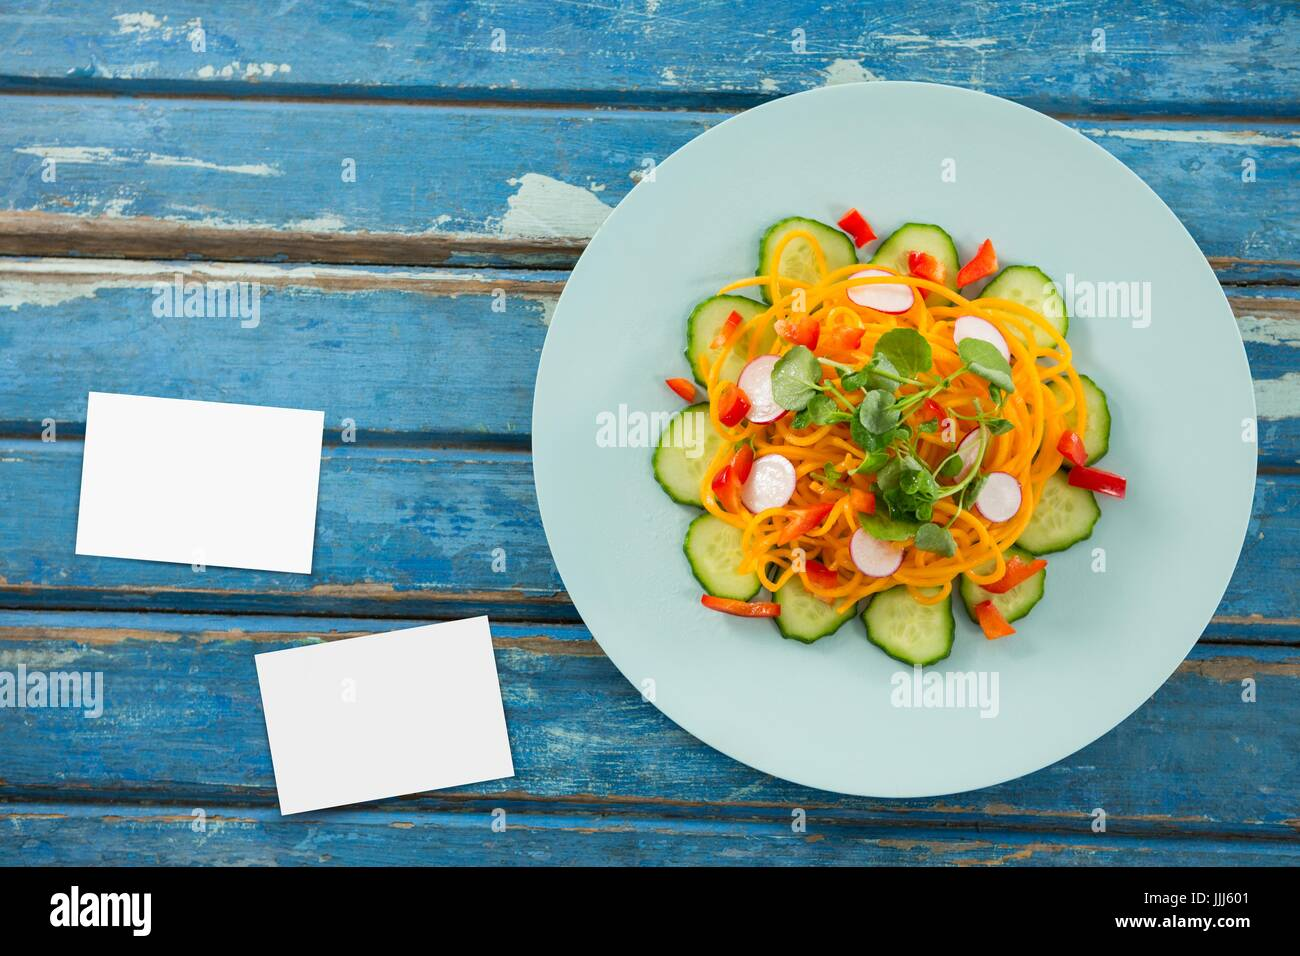 Bussiness cards on blue wooden desk with food 3d - Stock Image